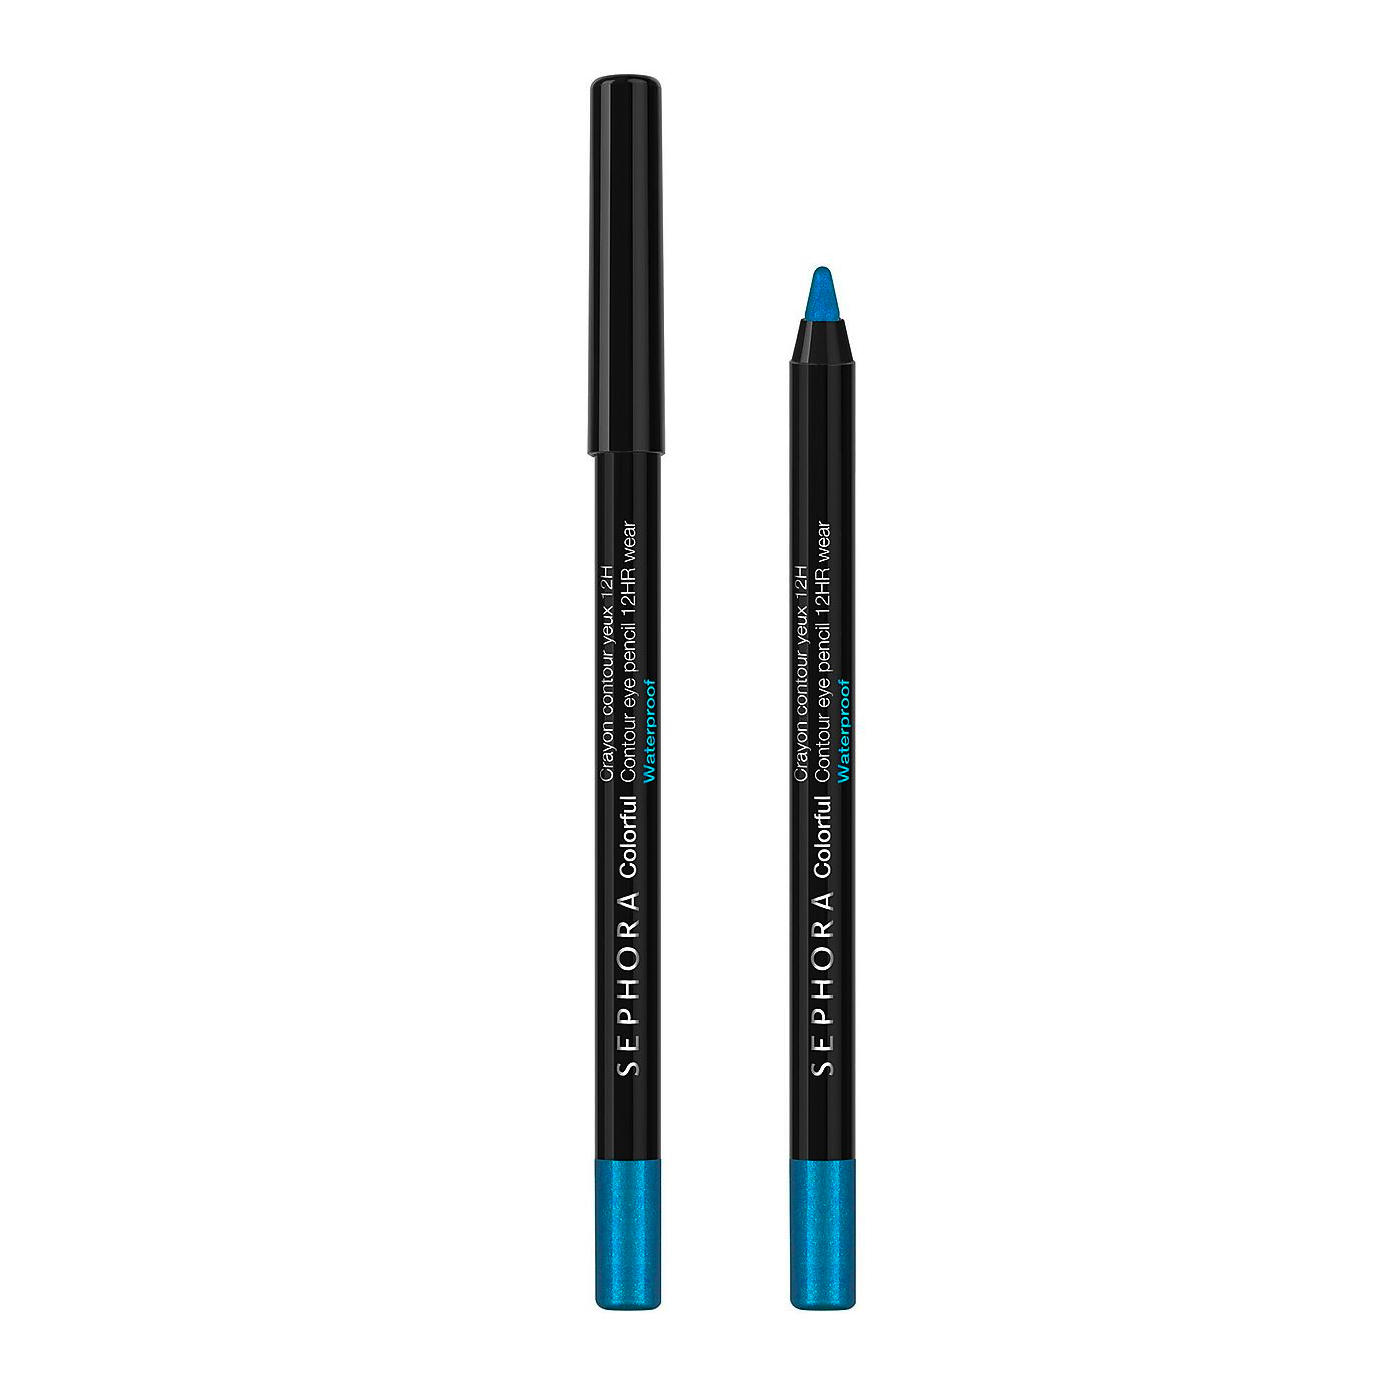 Sephora Colorful Waterproof Eye Contour Pencil Peacock Blue 50